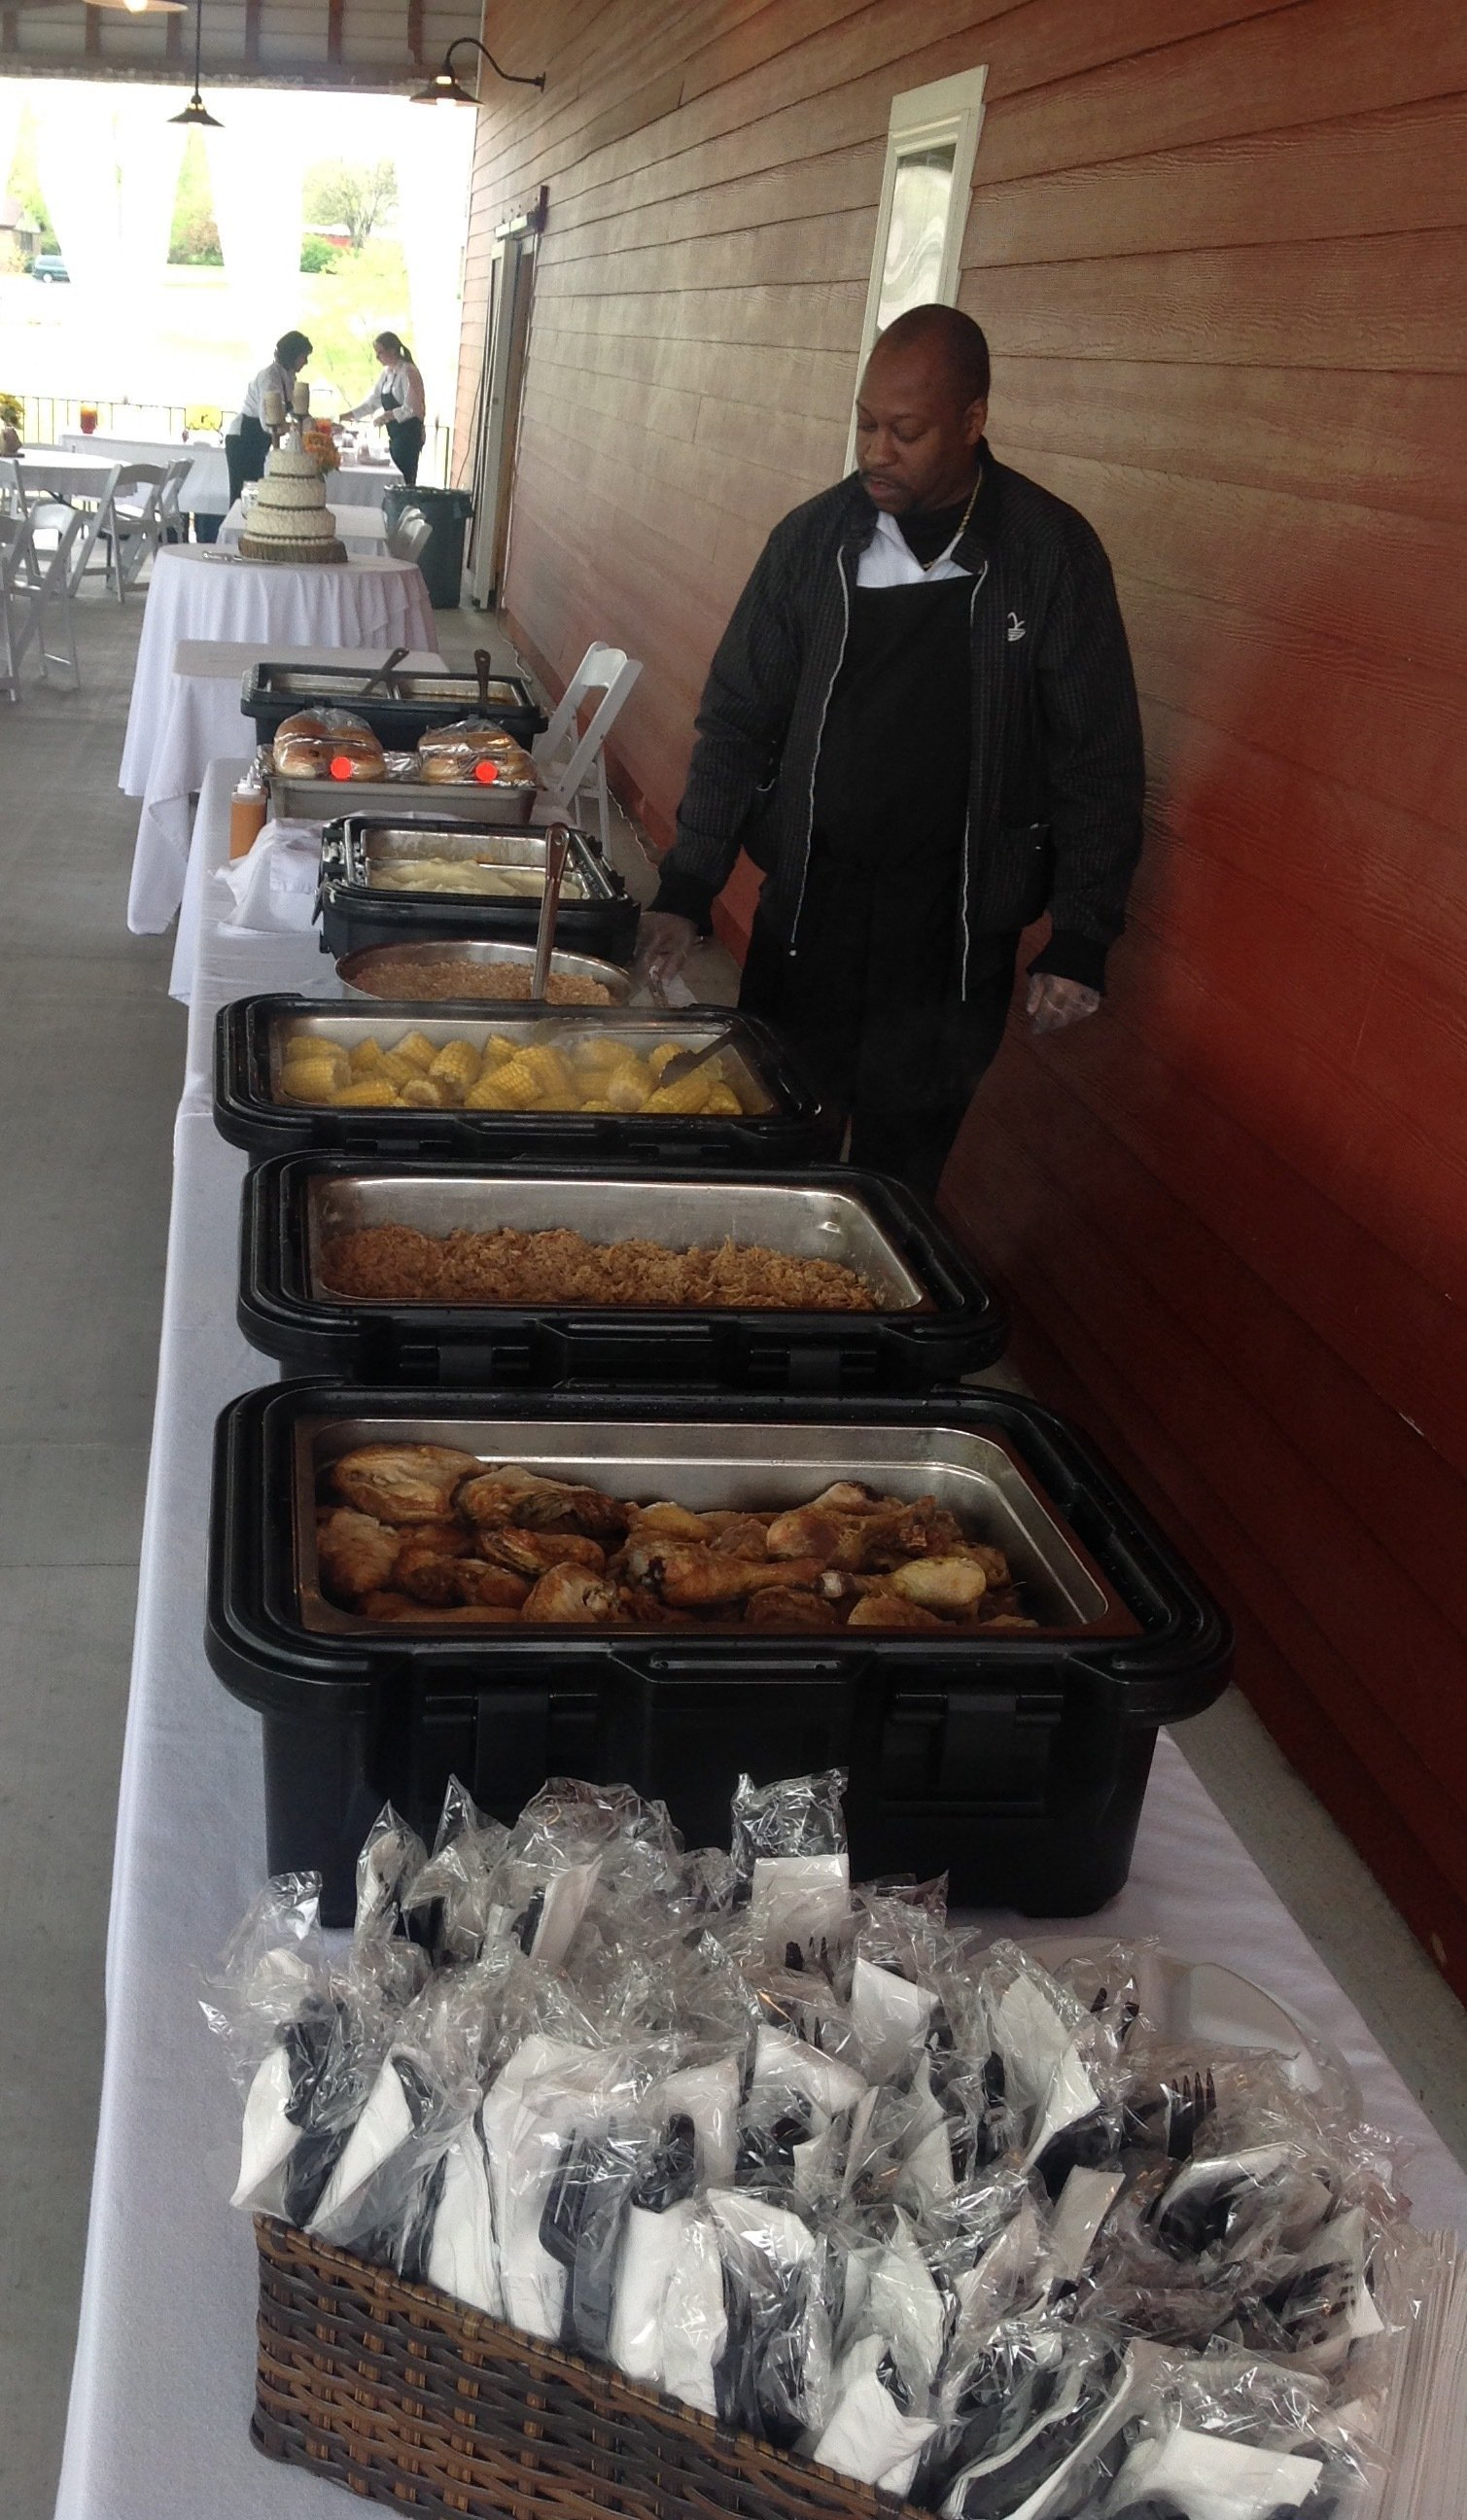 Catering by carter brother in High Point, NC